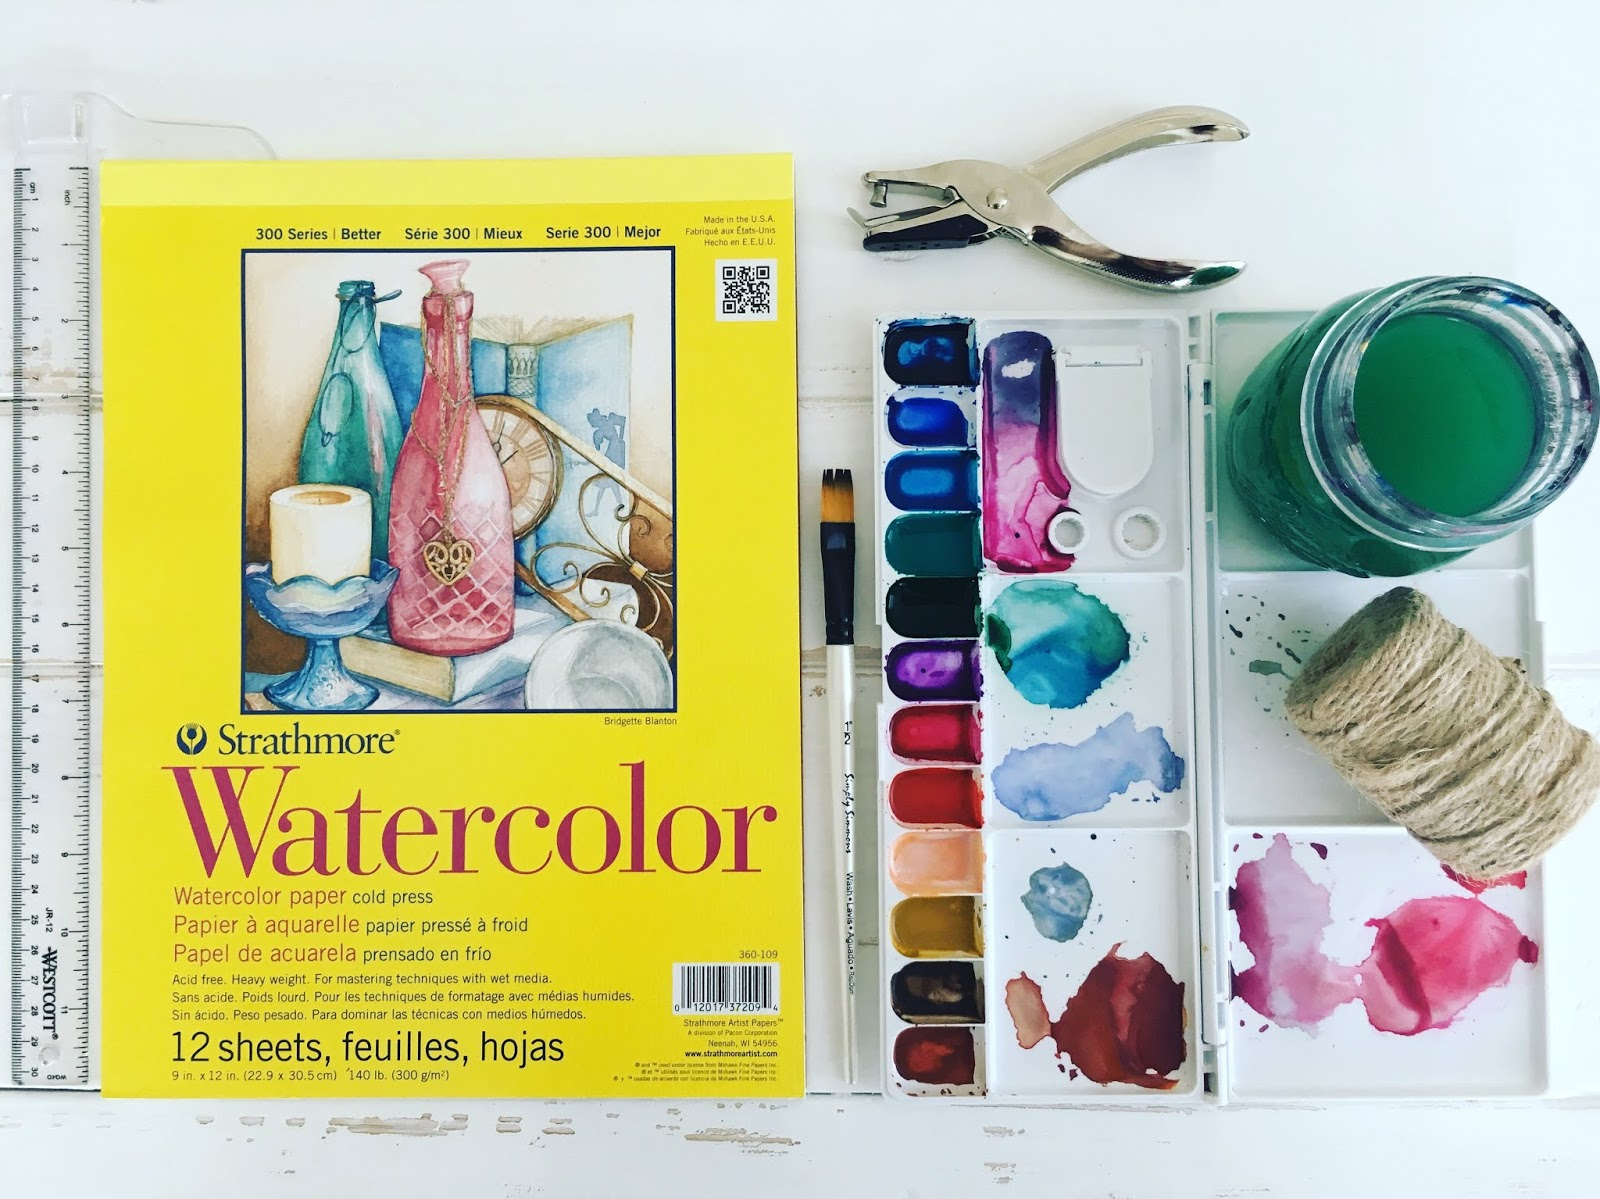 Watercolor Supplies - Watercolor Paper - Watercolors - Art Blog - theartsyboho.com